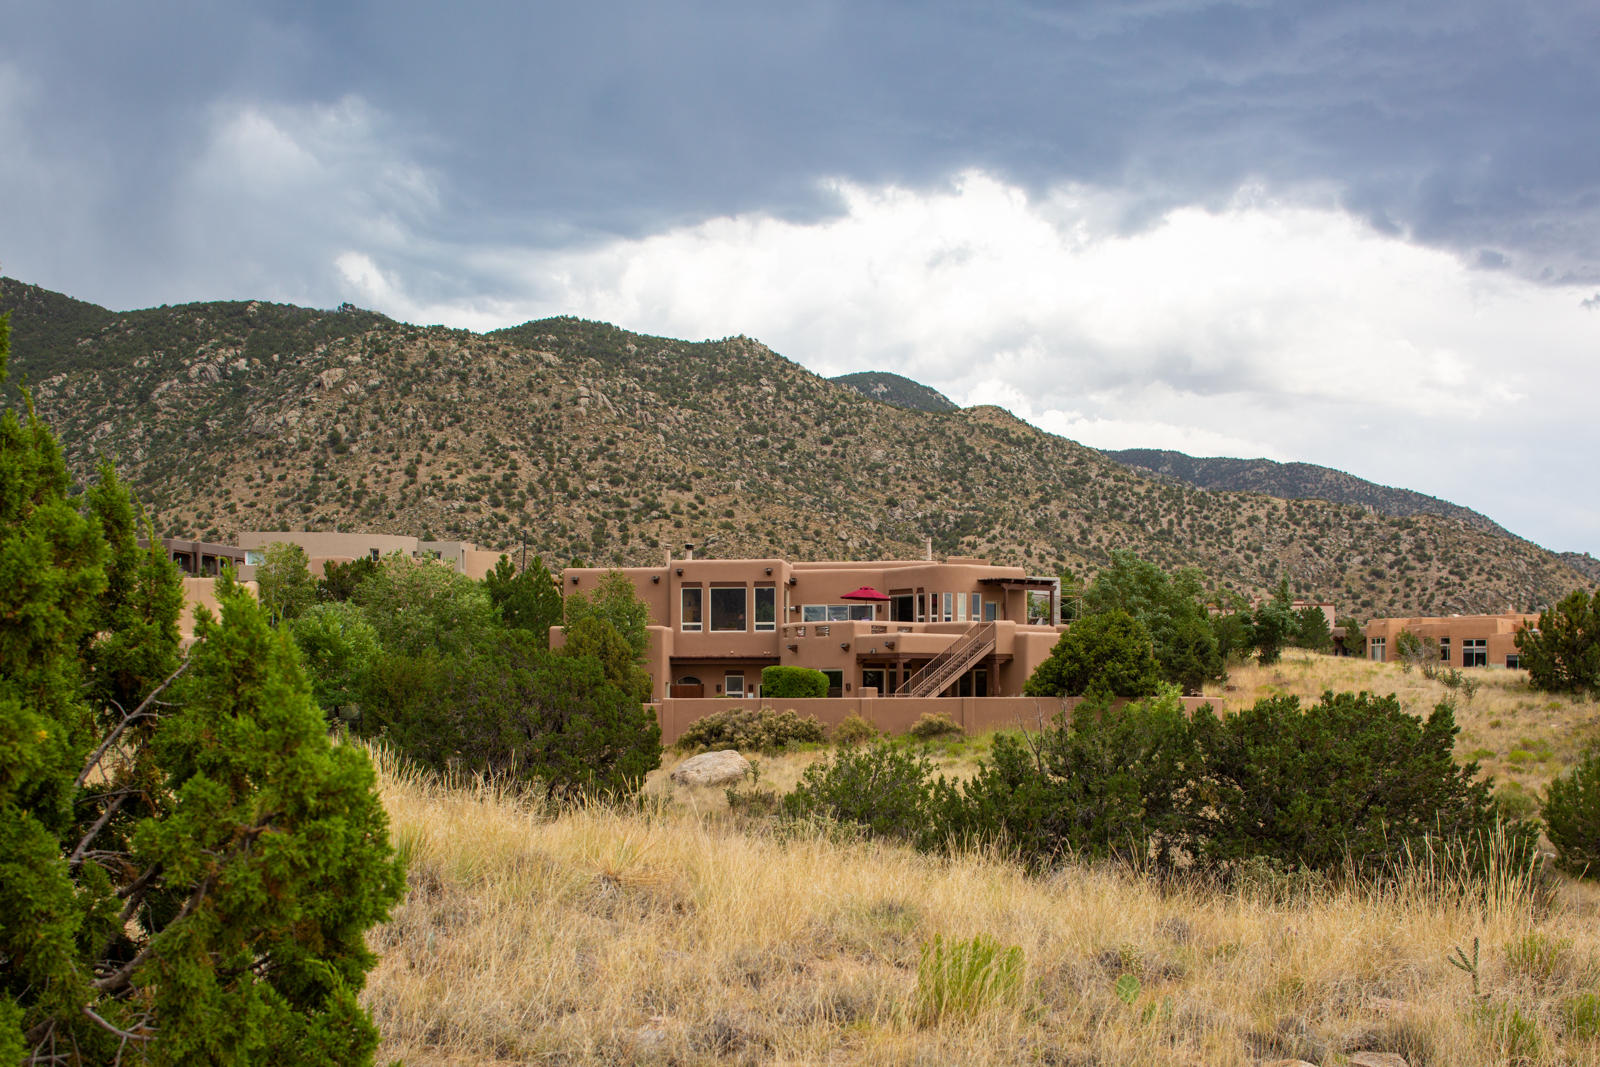 This exceptional High Desert home is perfectly positioned to take advantage of the dramatic views of the Sandia Mountains and city lights. Beautiful outdoor living spaces feature multiple decks, patios, an outdoor kitchen, a resort style pool, an outdoor Kiva fireplace, and grassy yard, a rare find in High Desert. Inside, there are 2 living and dining areas, a huge game room, an exercise room, 6 bedrooms, and a home office. The generous size of this home offers a flexible floor plan that would work for a variety of living arrangements. Classic Southwestern detailing such as Vigas, wood and tile flooring, and Kiva fireplaces give this home charm and character. Enjoy the best of the High Desert lifestyle with walking, biking and hiking trails immediately outside your front door!